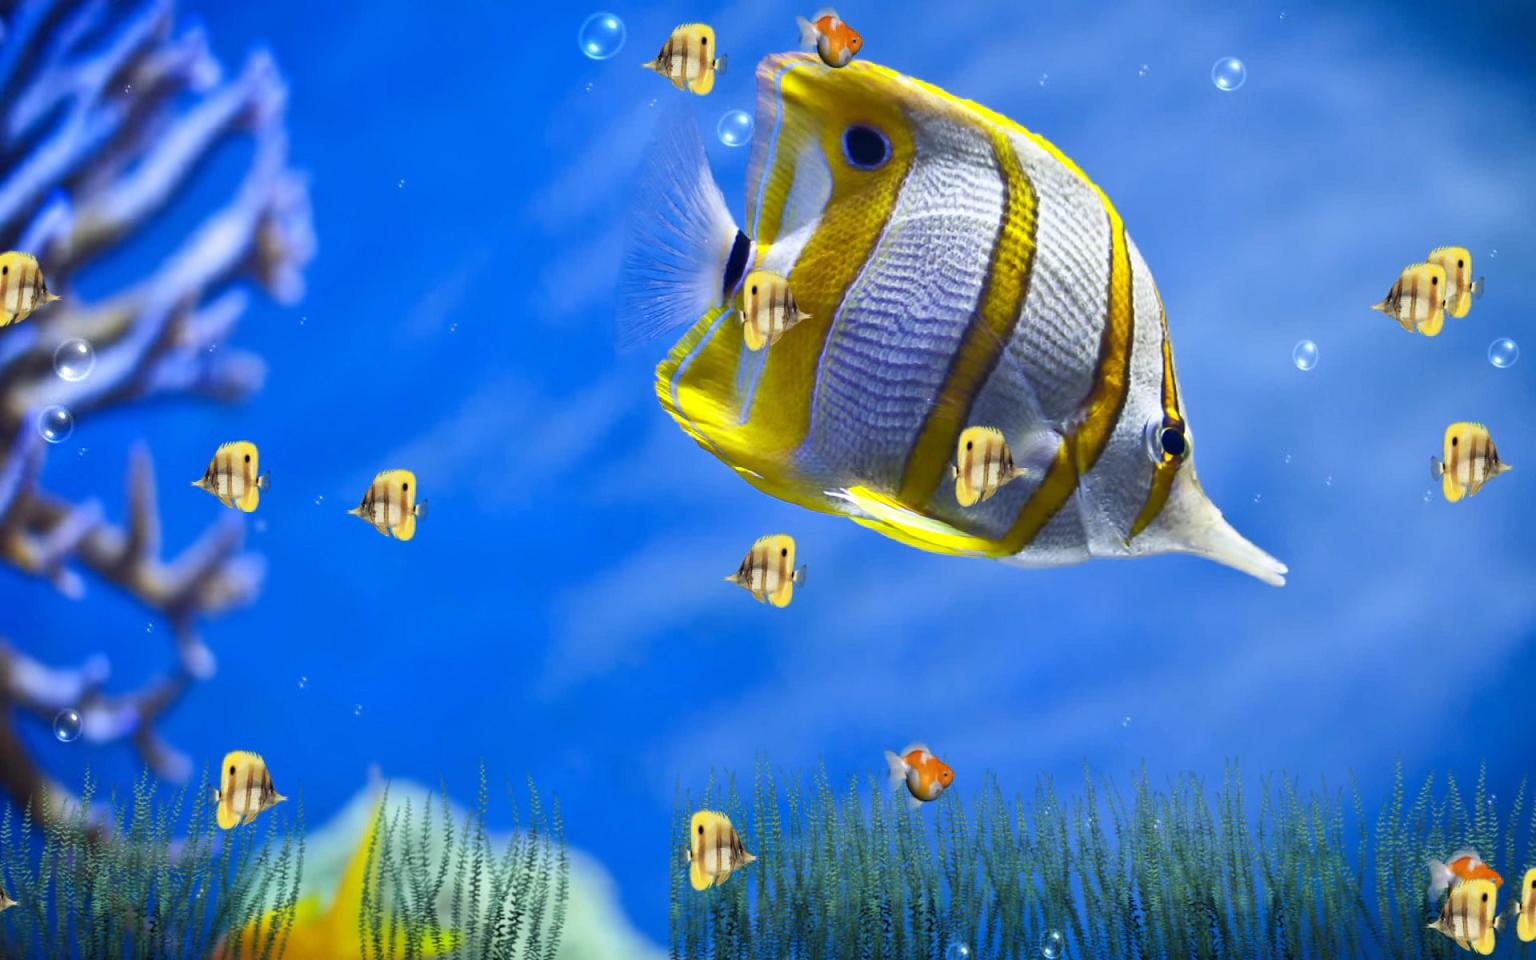 download marine life aquarium animated wallpaper free